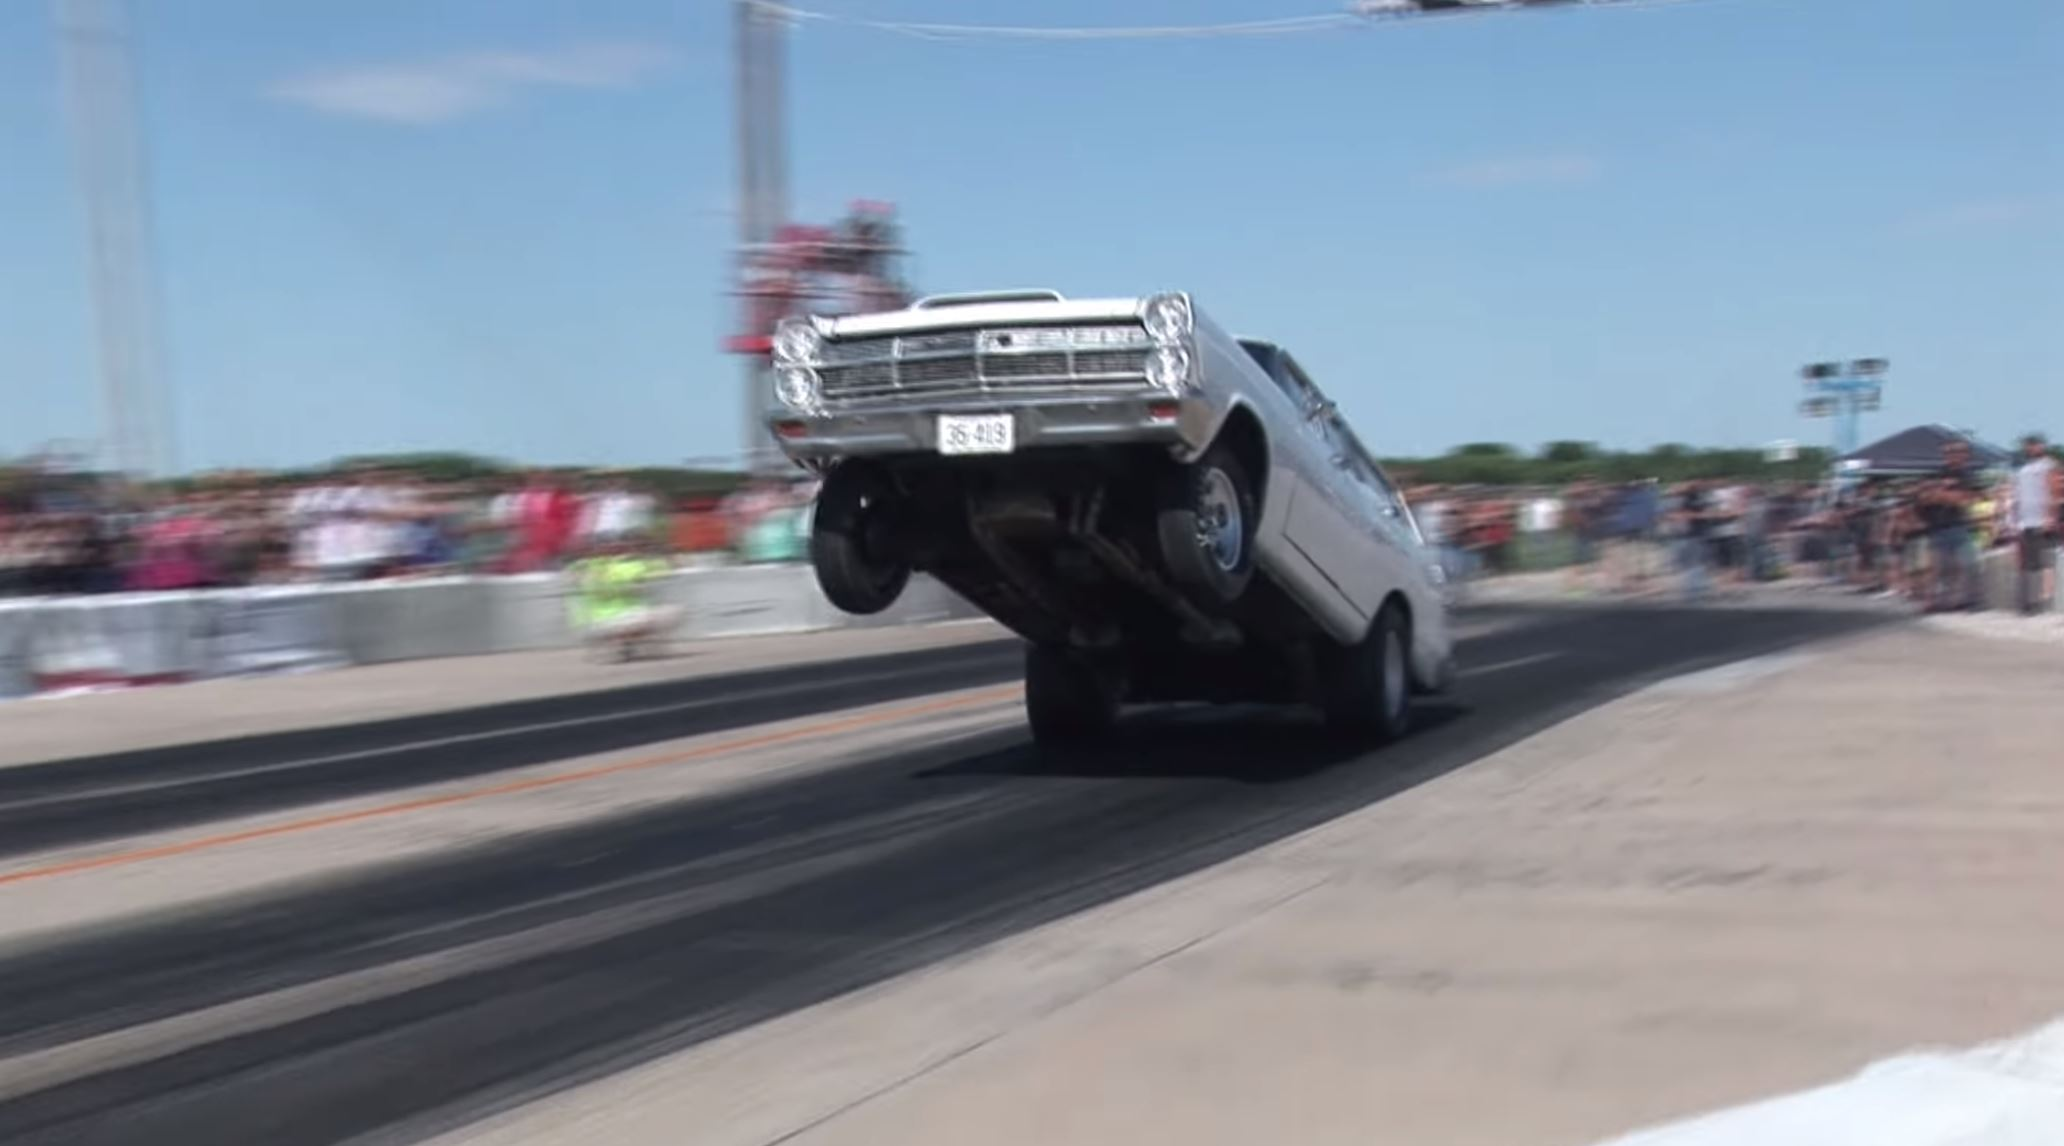 17 Awesome Wheelstands From Urban Hillbilly Videos To Commemorate 2017